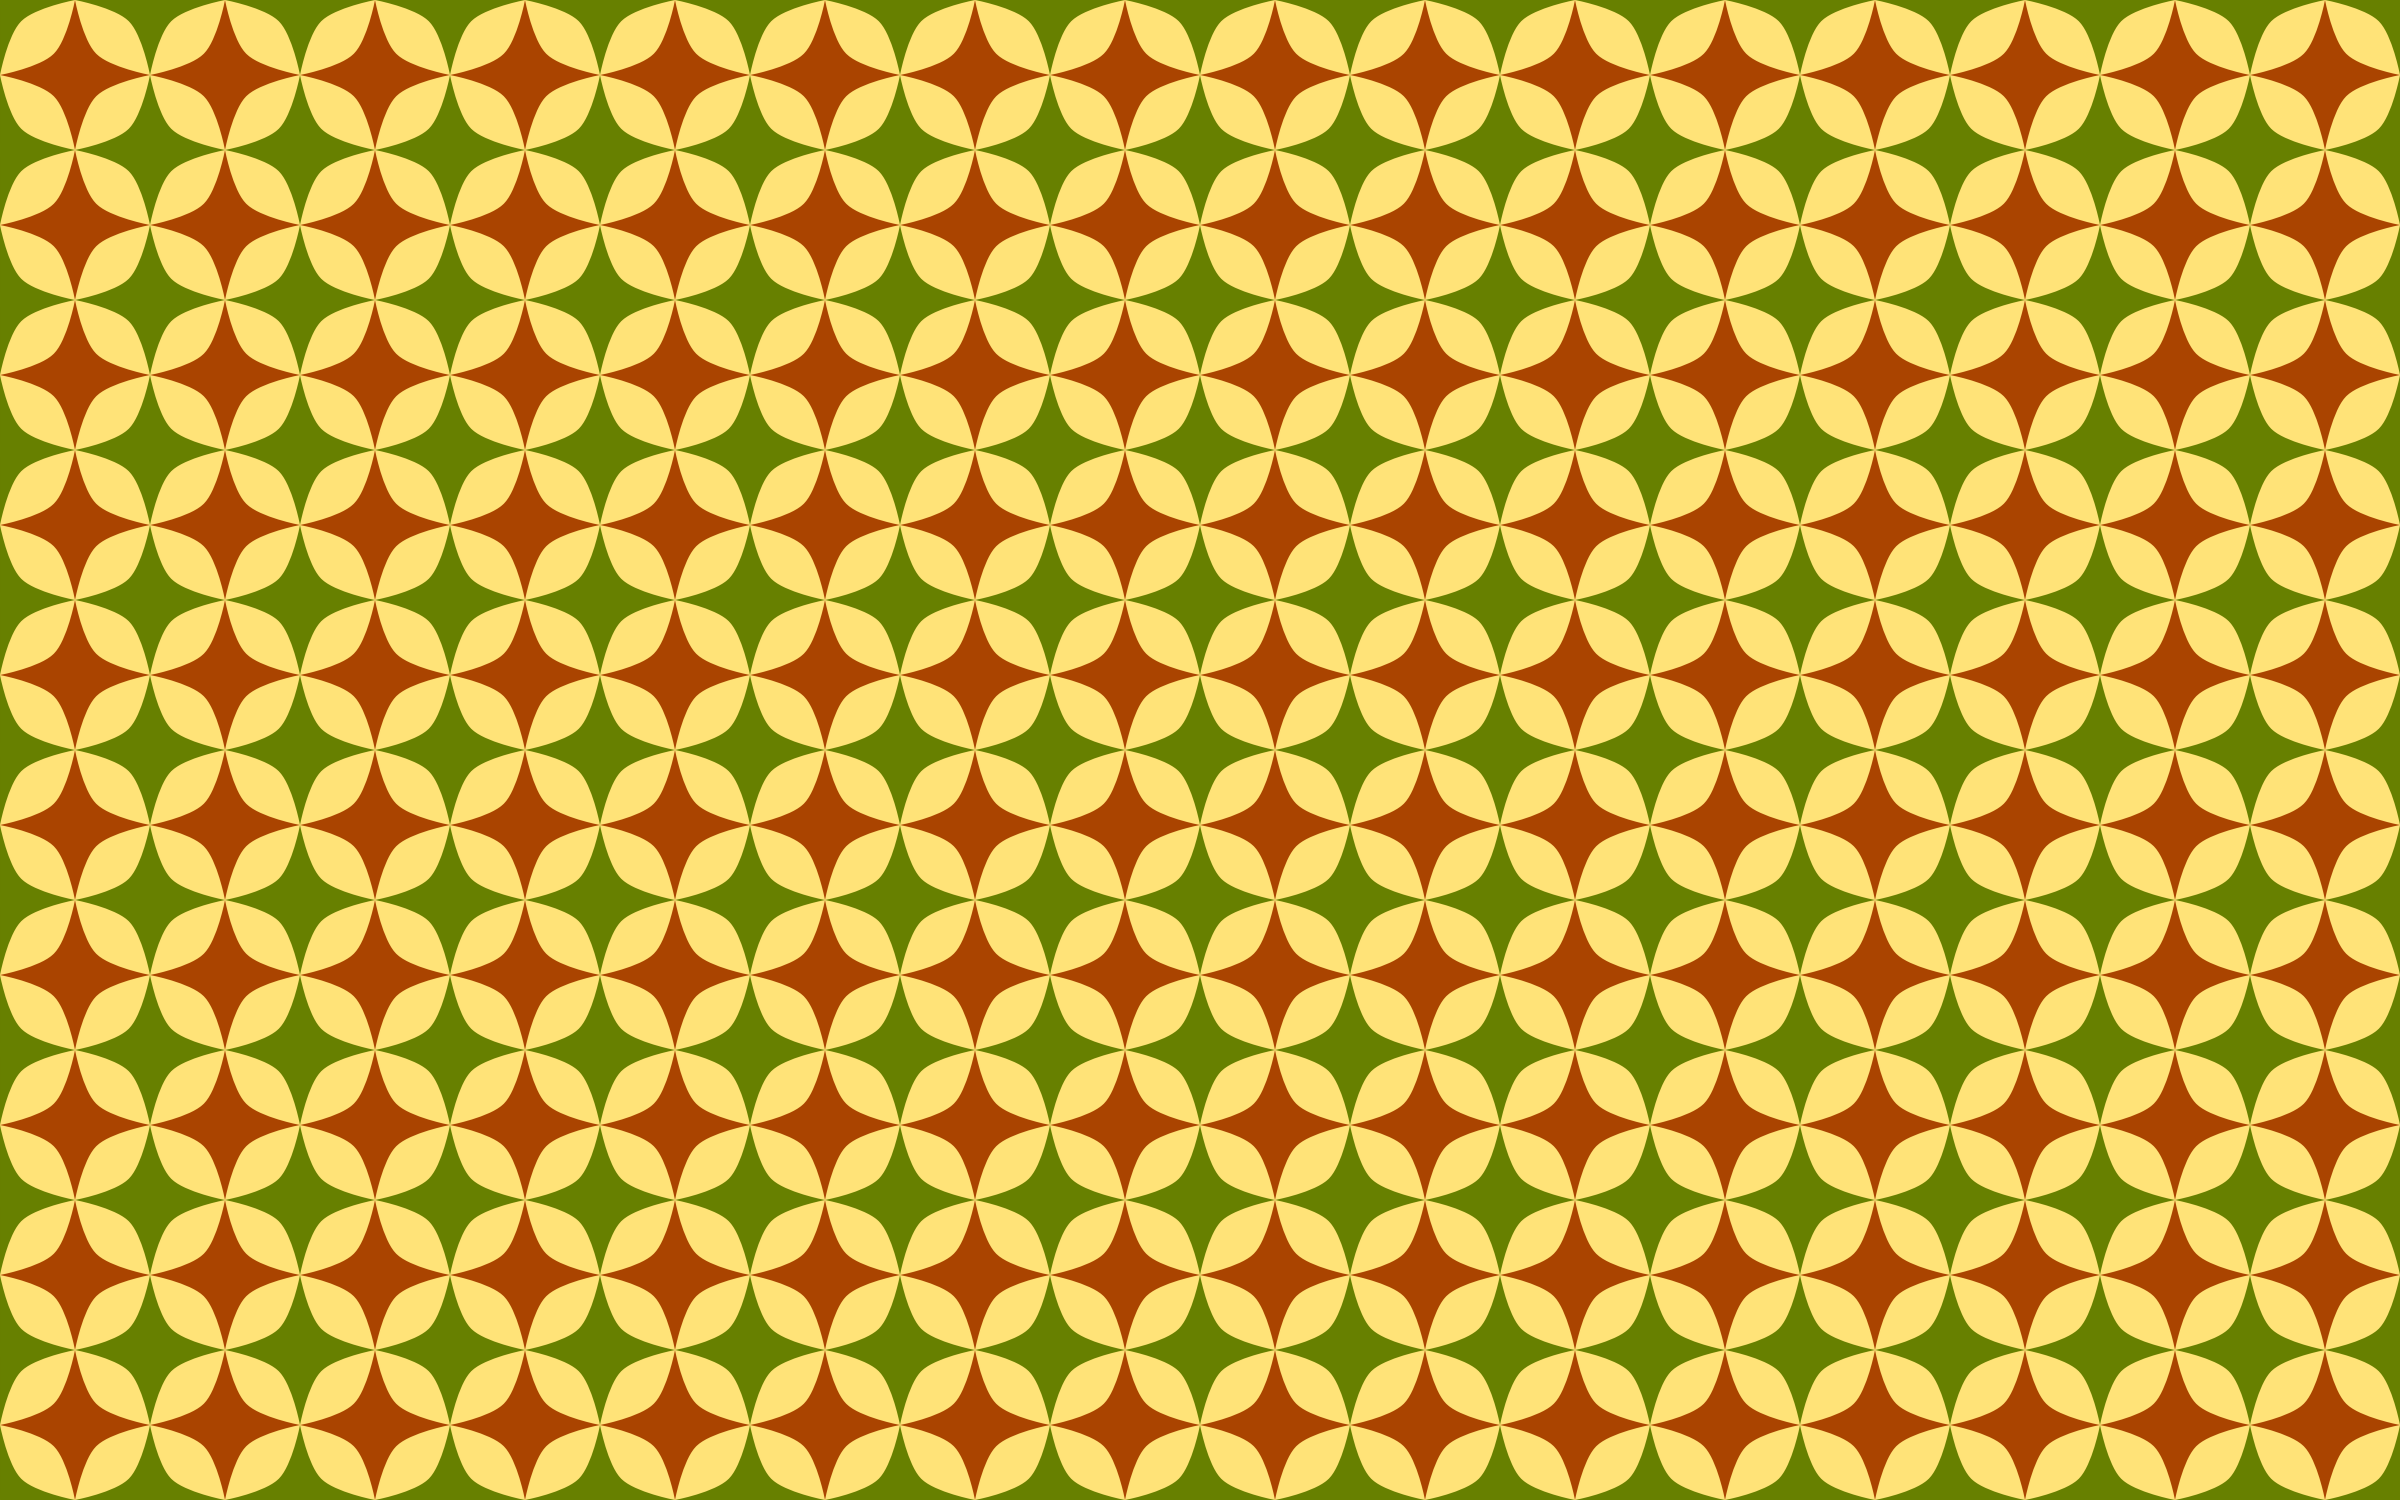 Background pattern 248 (colour) by Firkin